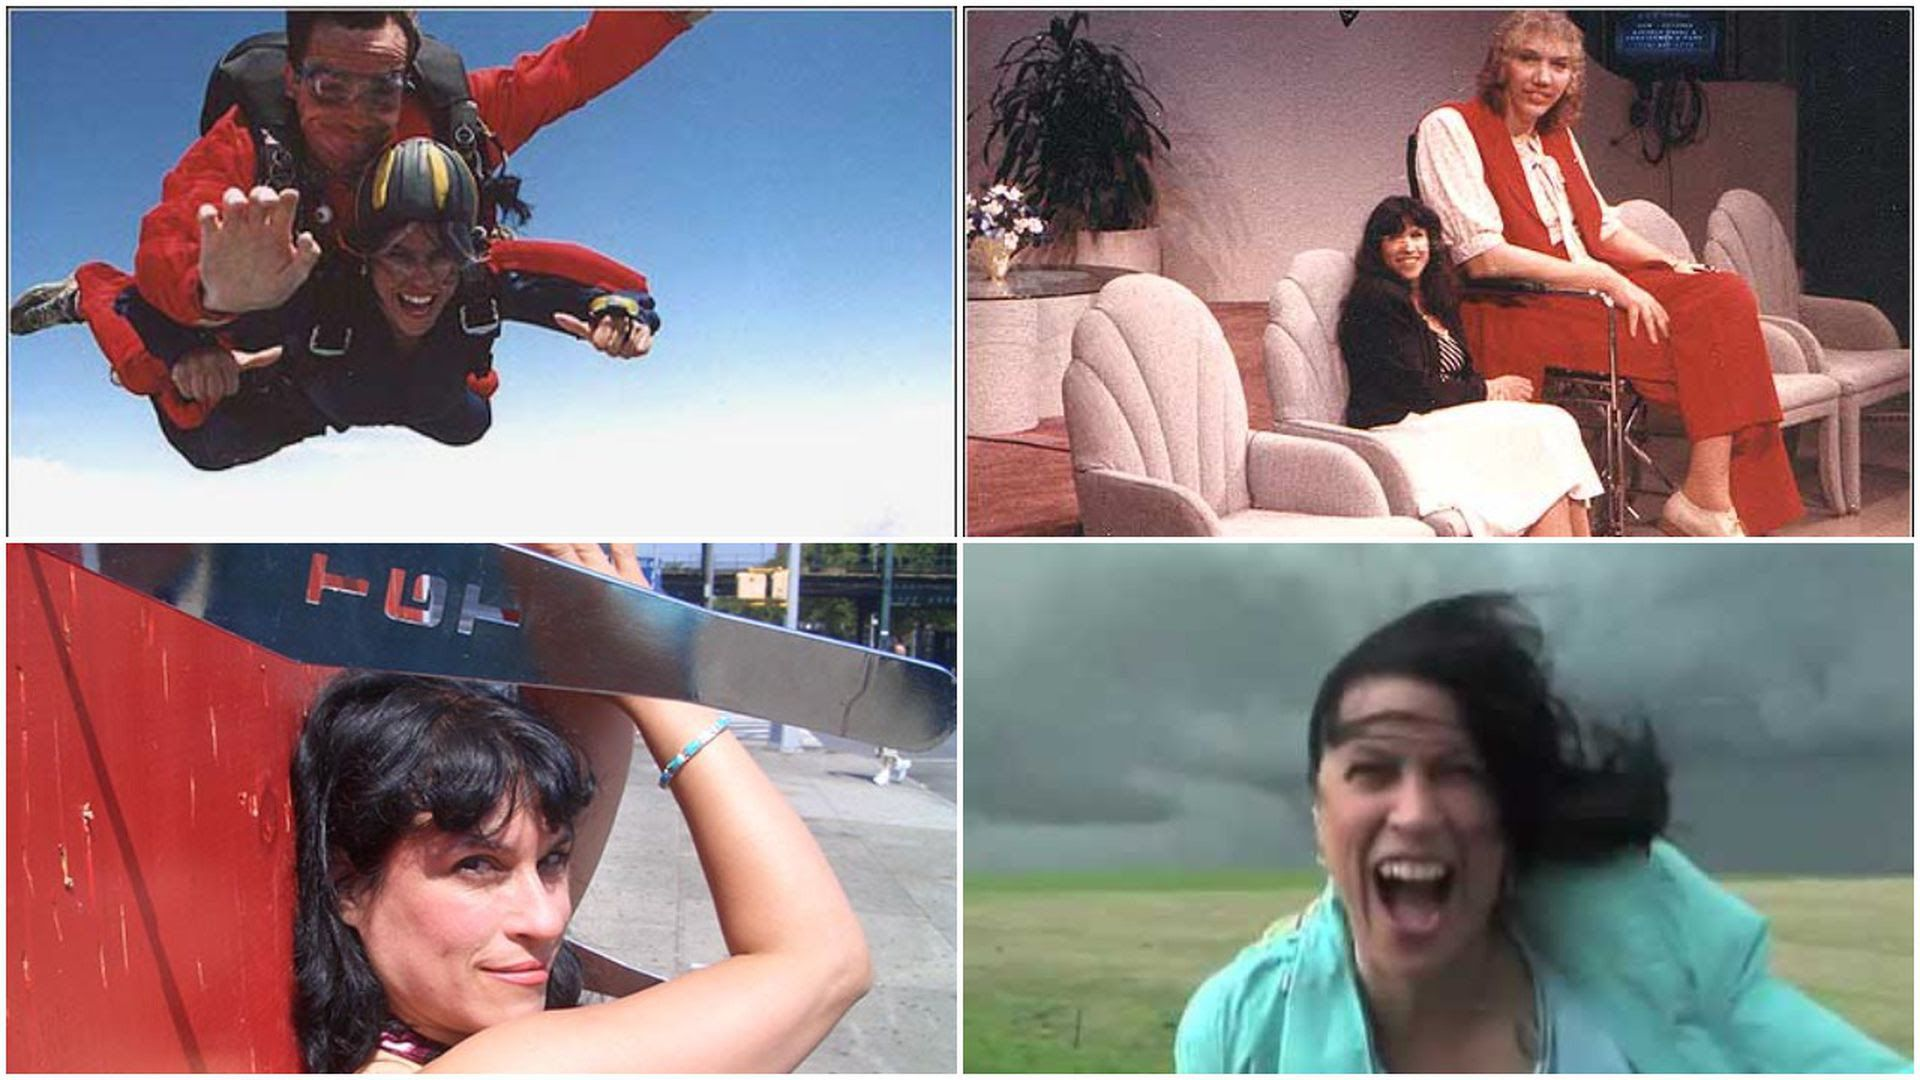 A grid of Fran of photos of Fran Capo skydiving, yelling and posing on television.